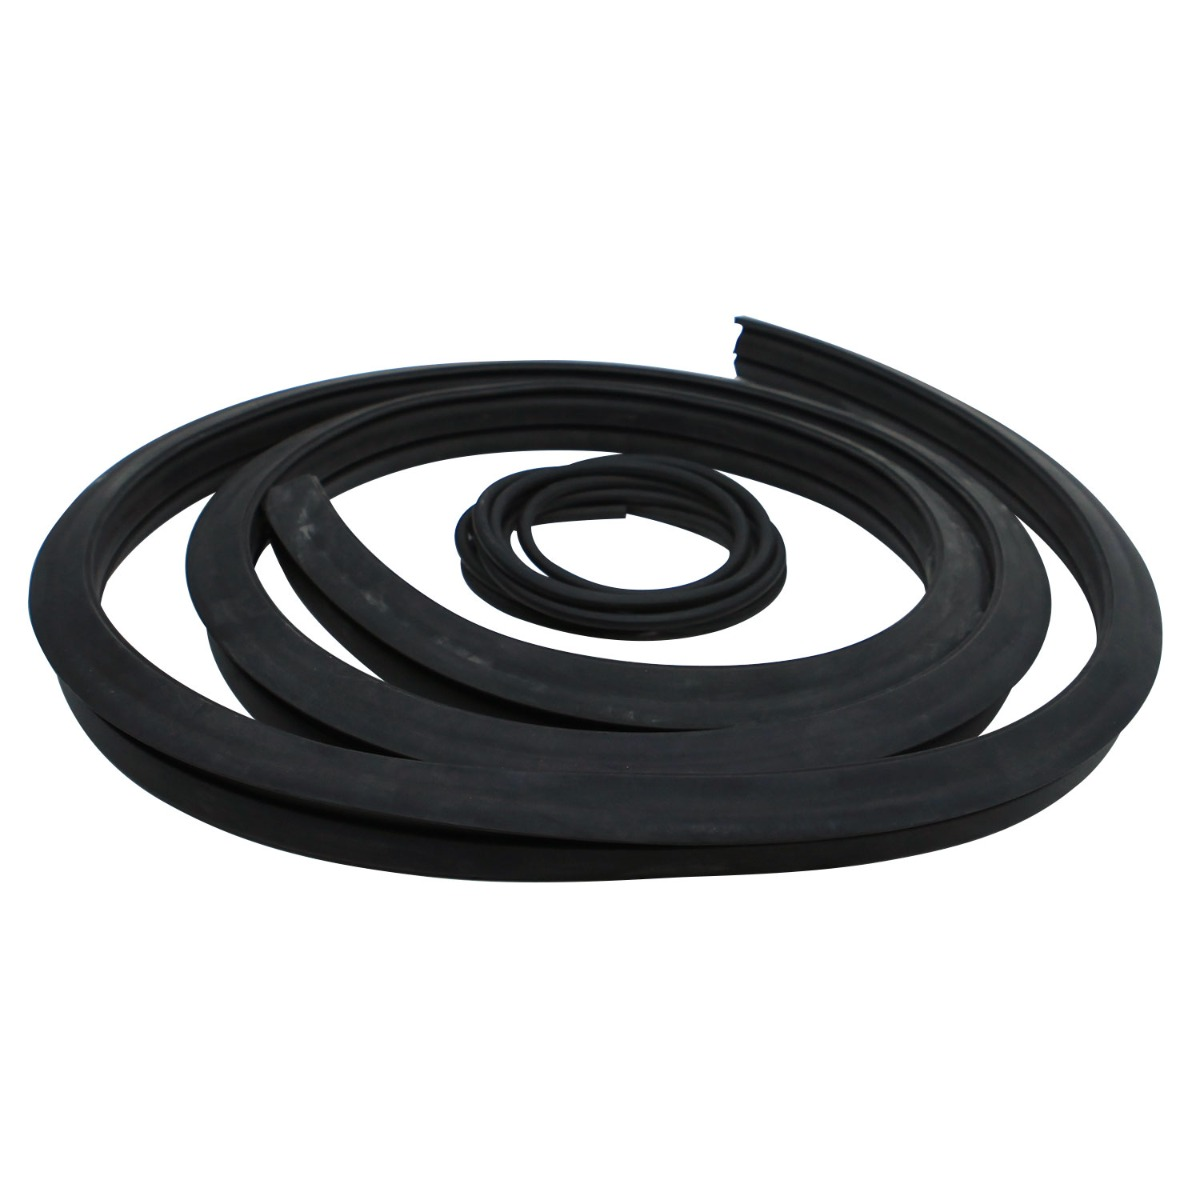 Rubber Seal and Cord 6675387 Compatible with Bobcat Skid Steer Loader 450 453 463 540 542 543 553 641 642 643 645 653 741 742 743 751 753 763 773 843 853 863 864 873 883 953 963 7753